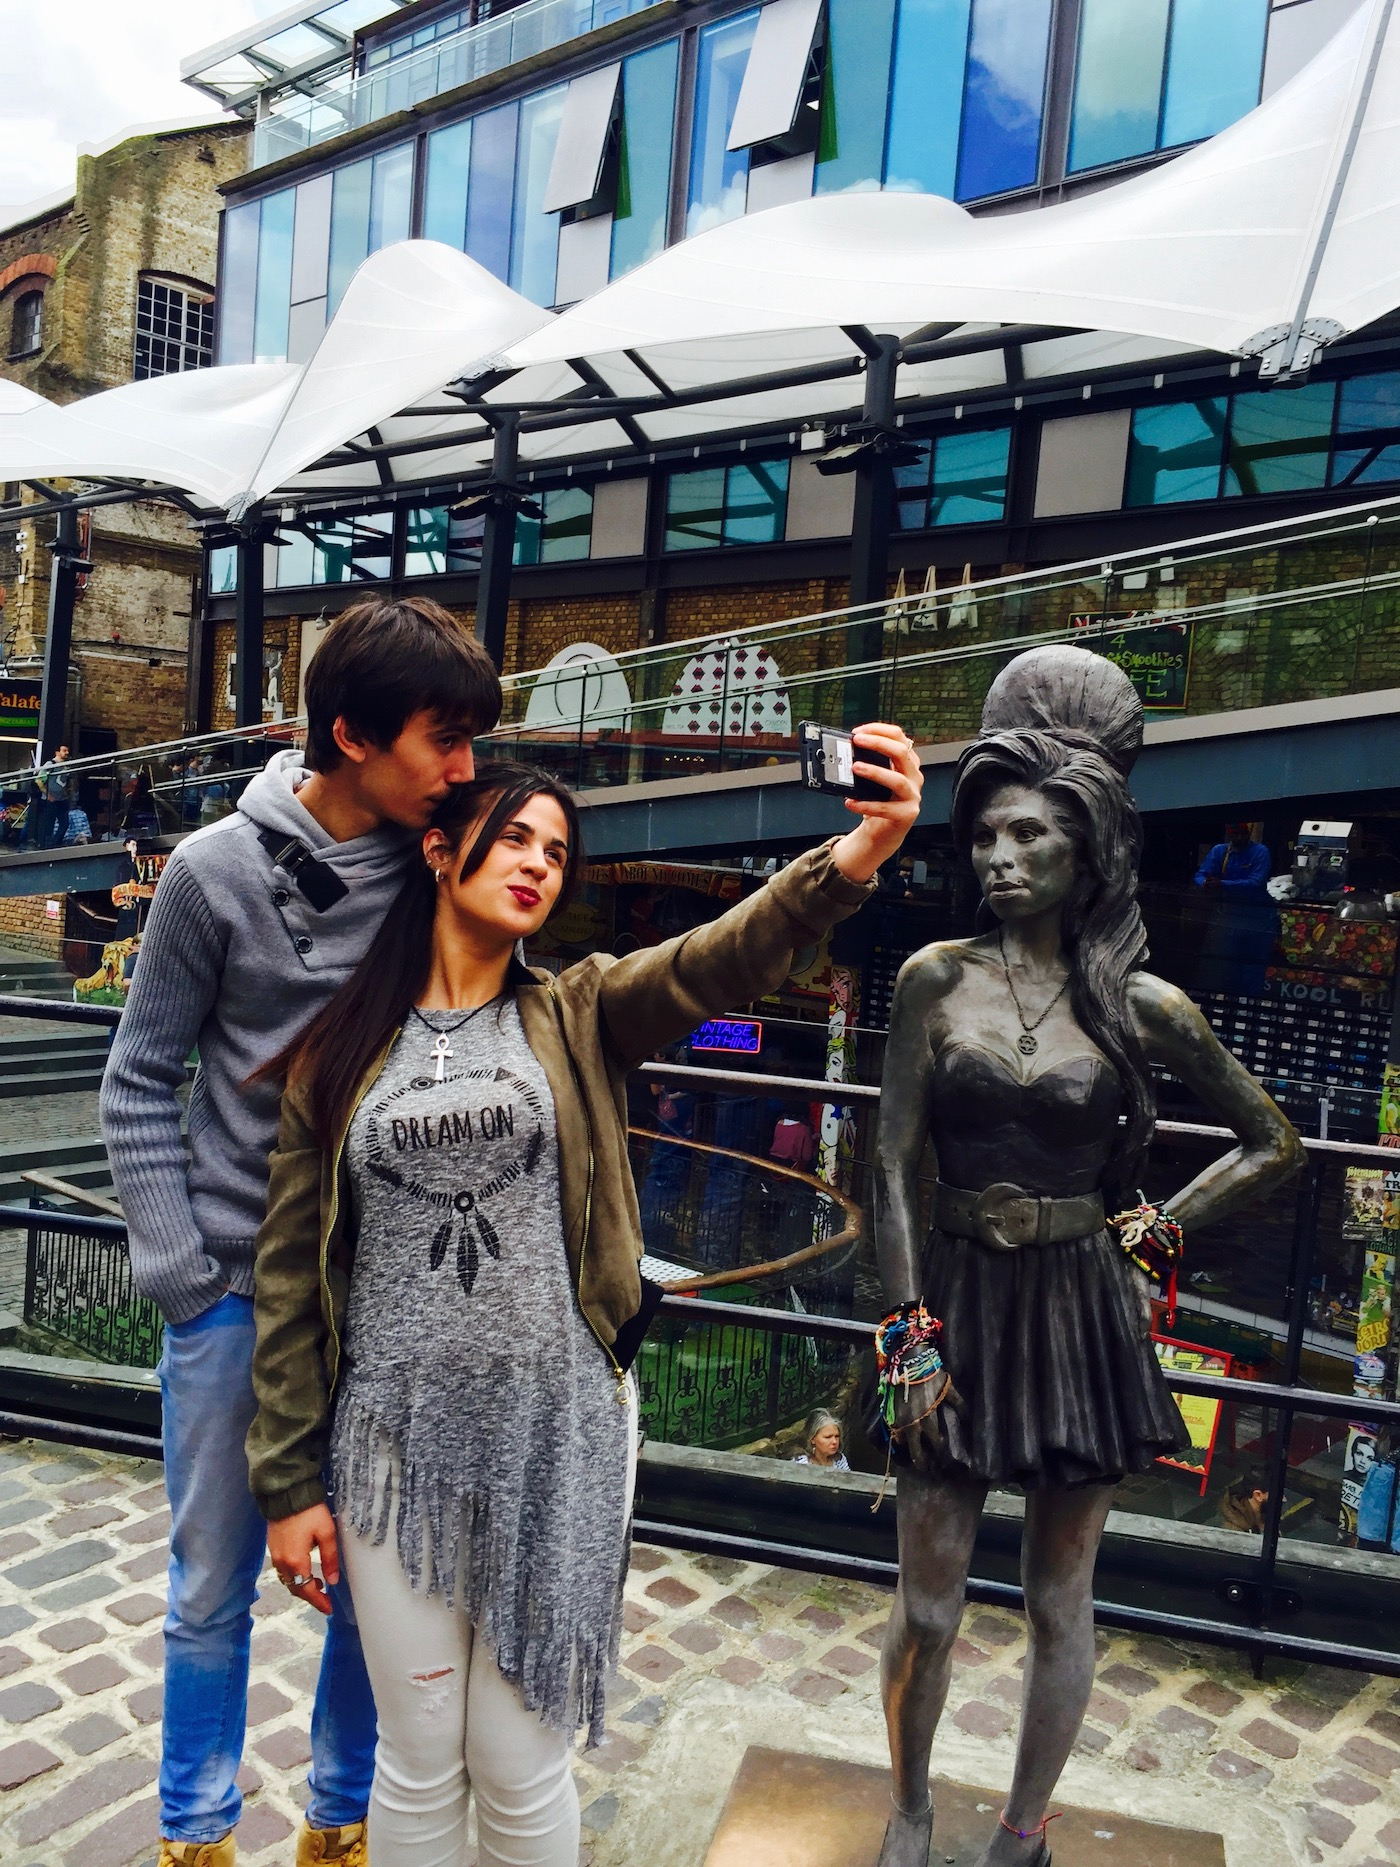 Posing in front of Amy Winehouse statue in Camden Market.